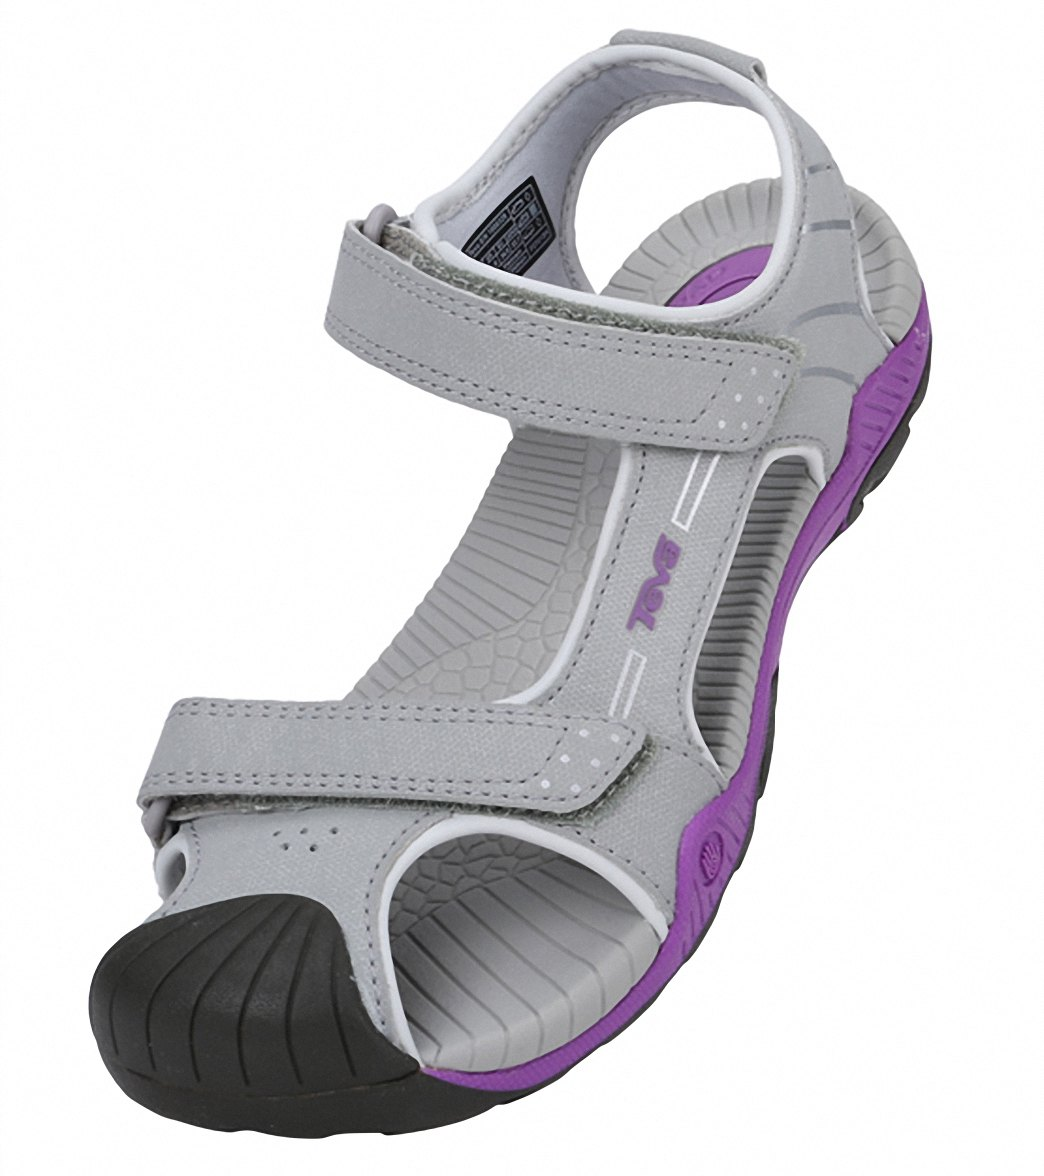 Teva Youth Girls' (1-7) Toachi 2 Water Shoes at SwimOutlet.com